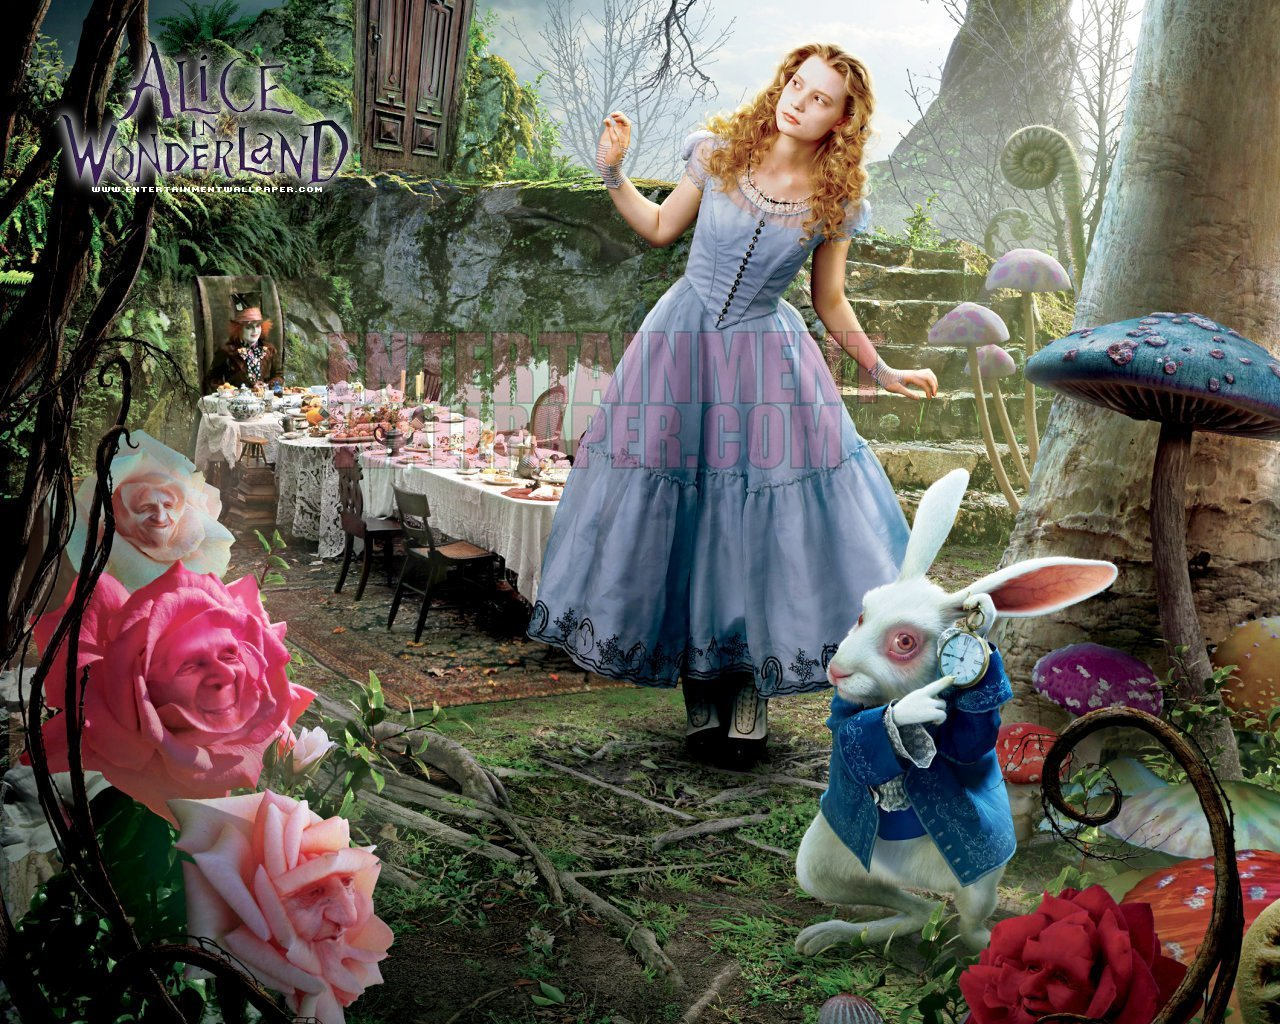 Upcoming movies alice in wonderland (2010)